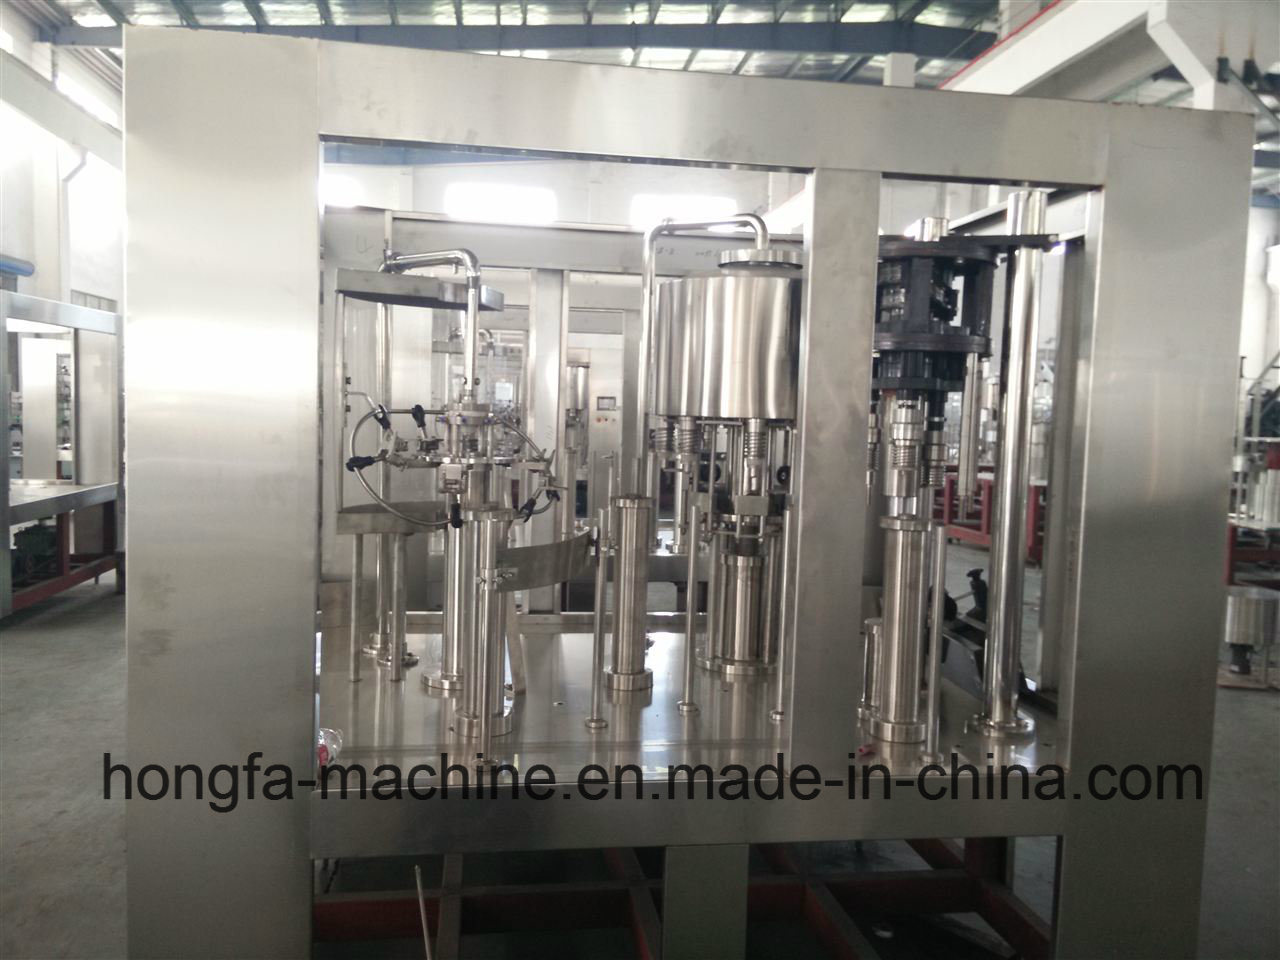 14-12-5 Full-Automatic Water Bottling Machine